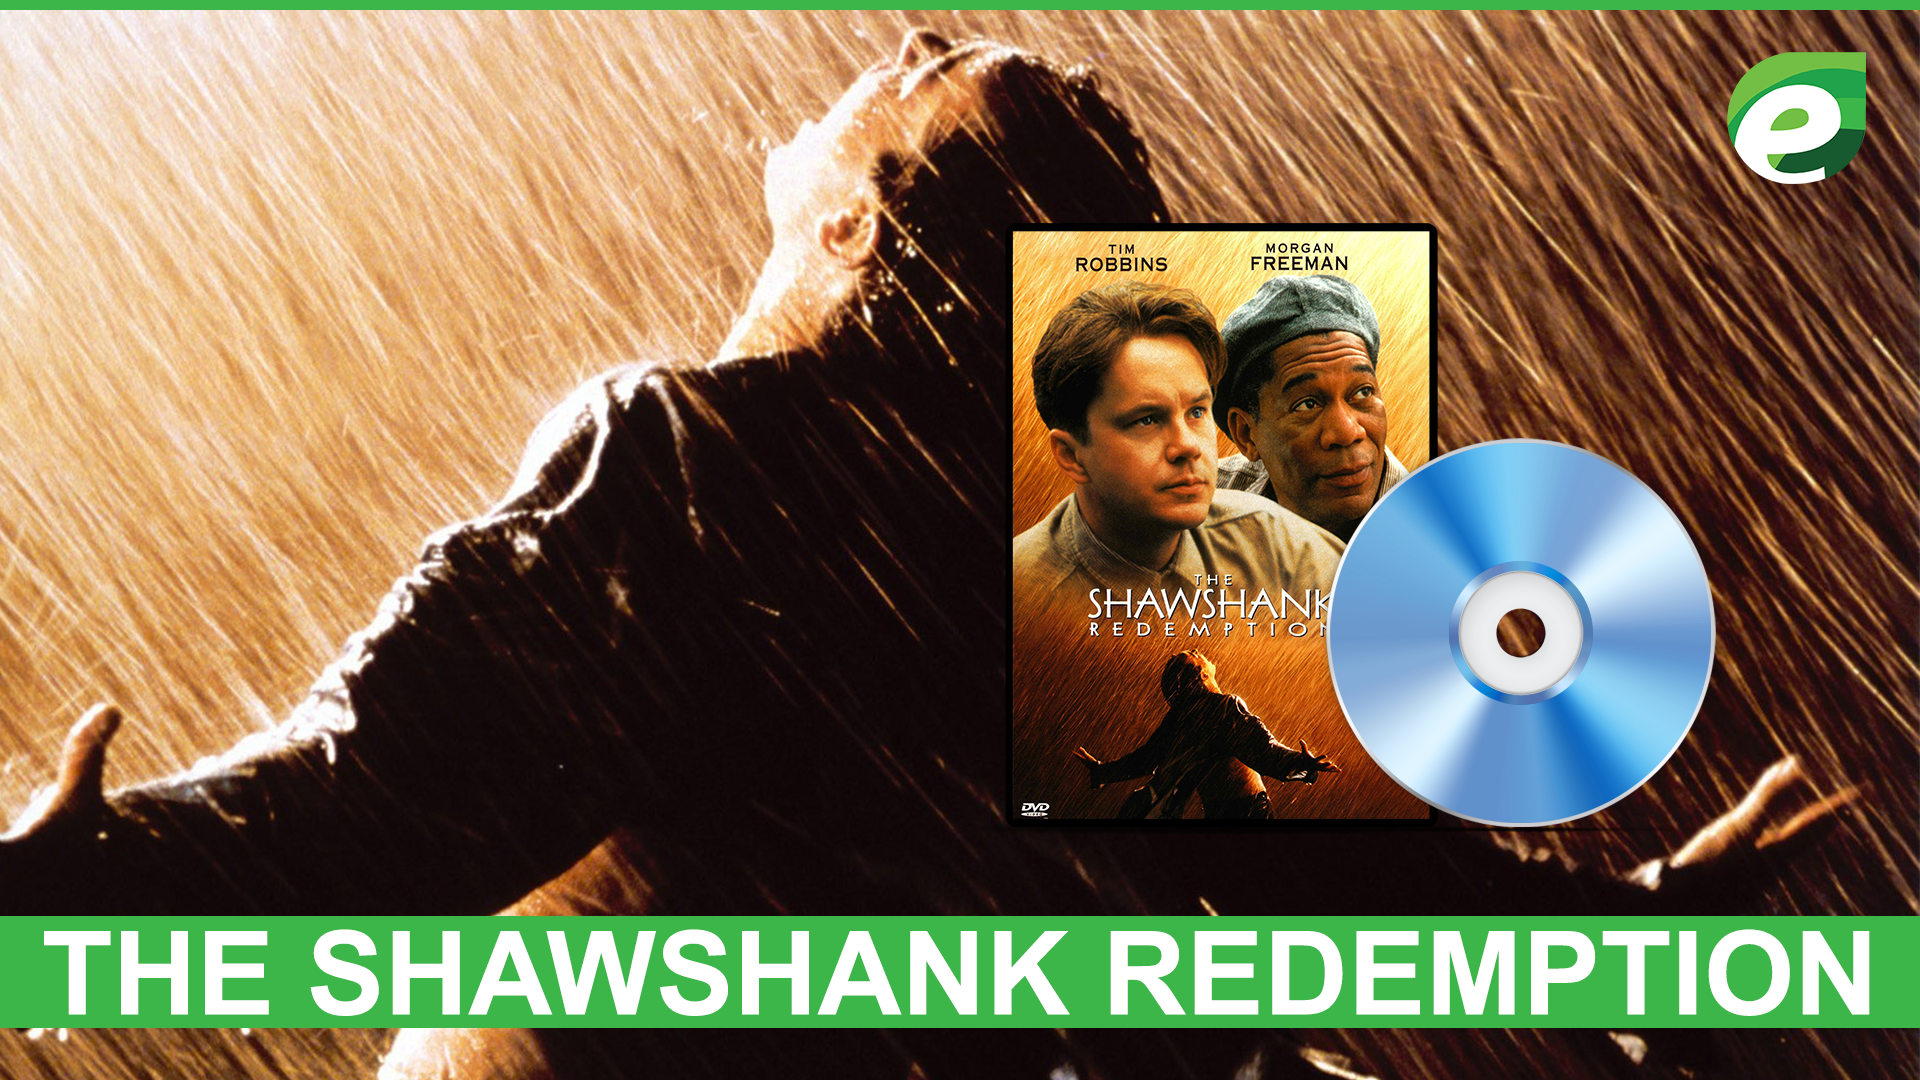 true story based movies- The Shawshank Redemption